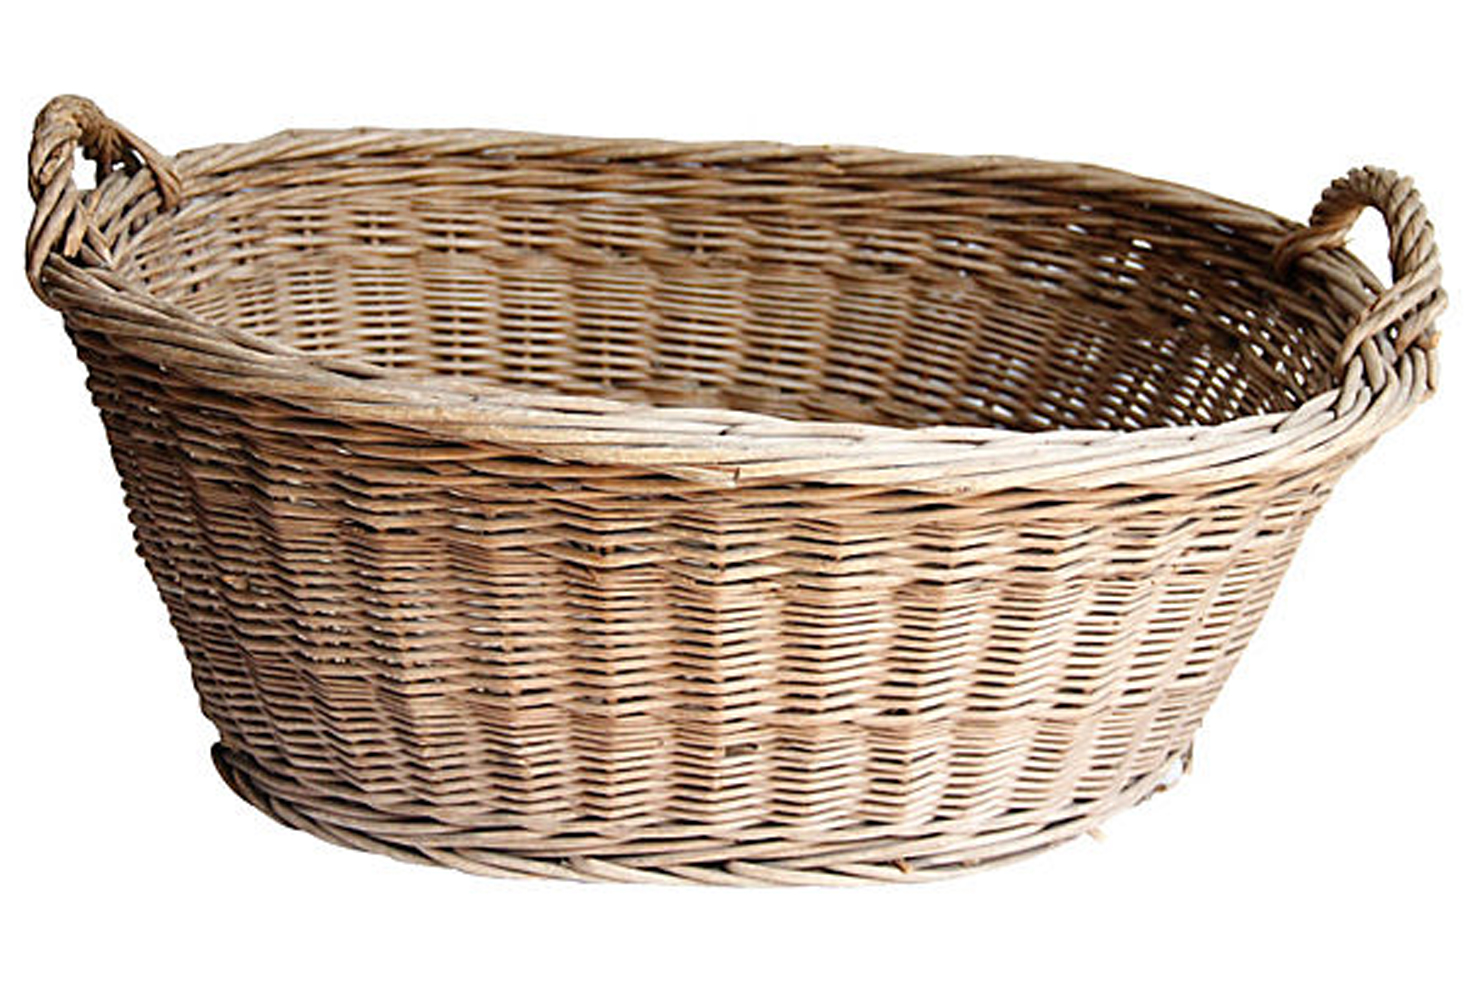 french wicker laundry basket XZCDHOV